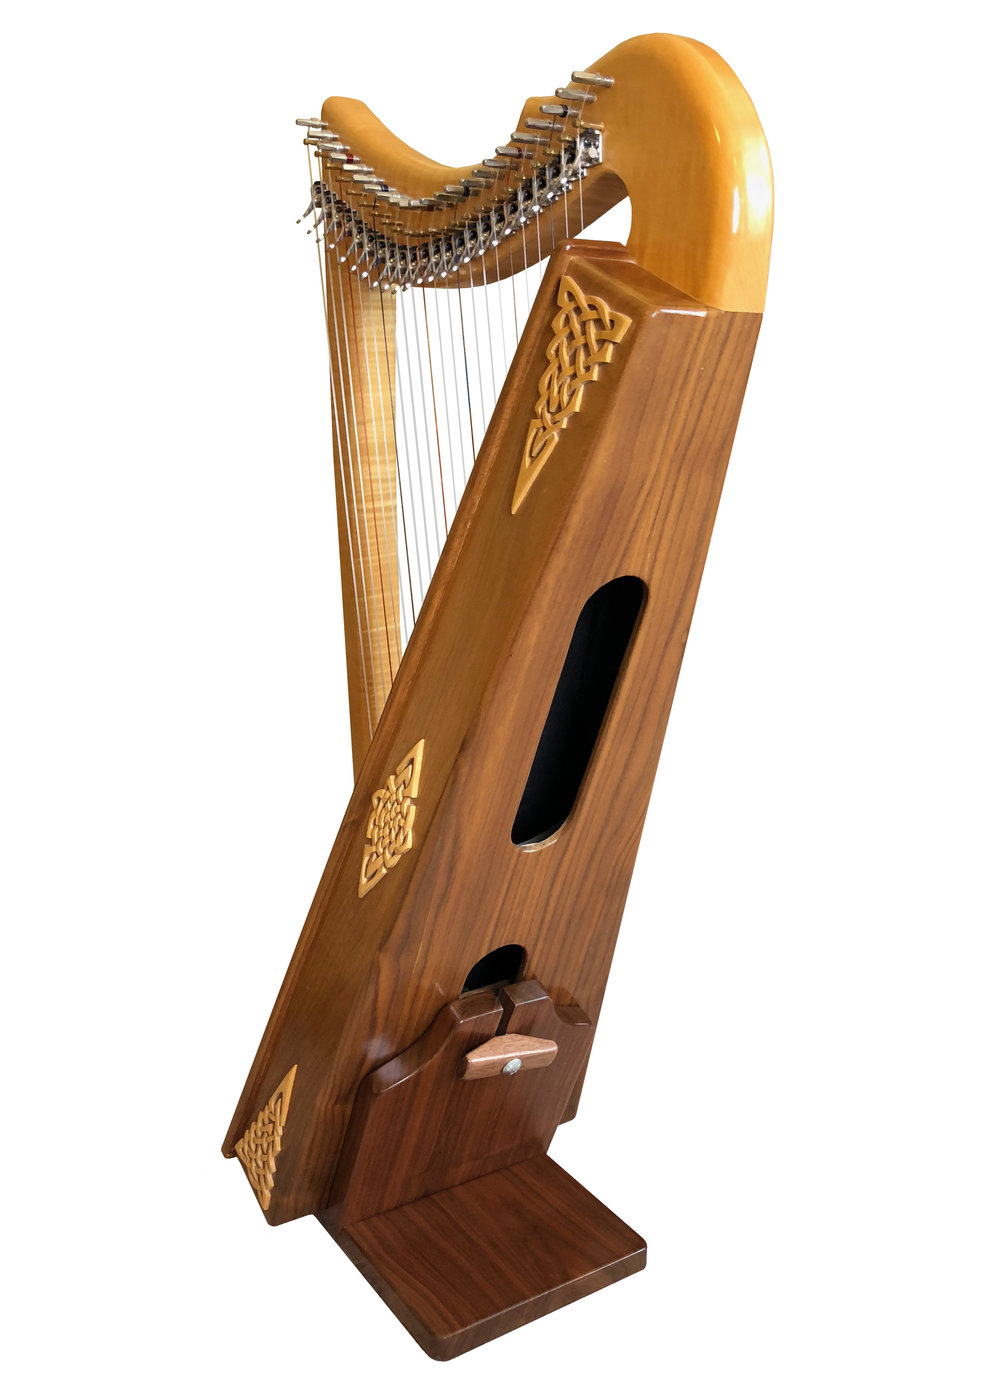 Rees Morgan Meadow in flamed maple and walnut with optional custom ornamentationand full Rees sharping levers. (This is Garen Rees' personal harp.)